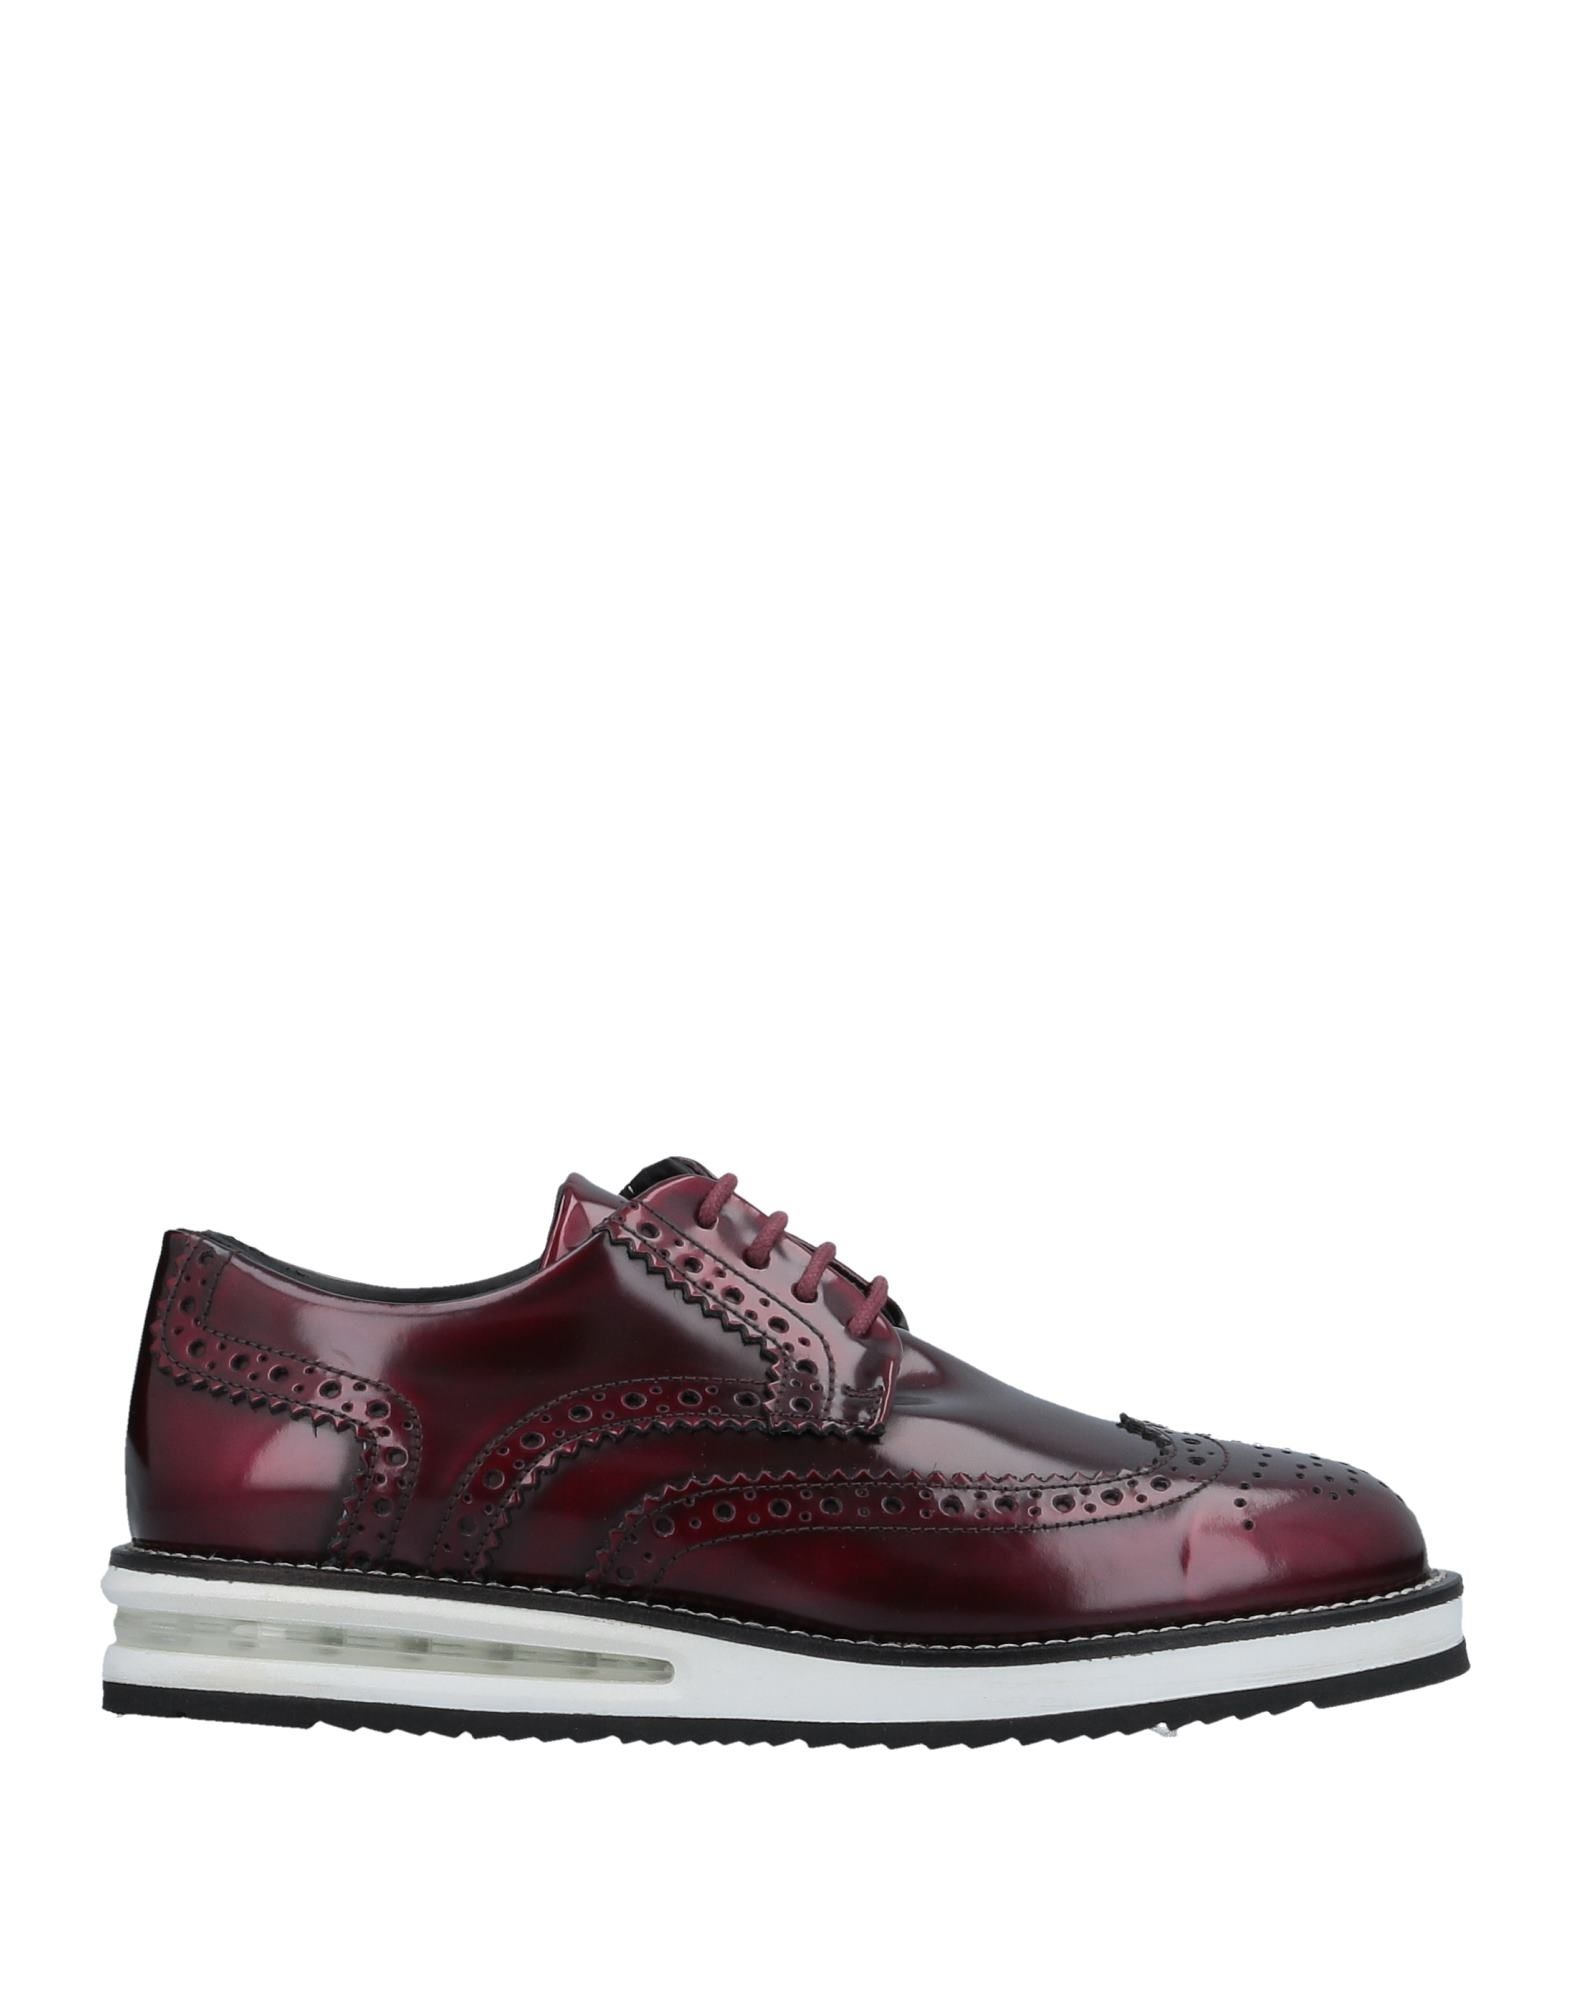 BARLEYCORN Laced Shoes in Maroon